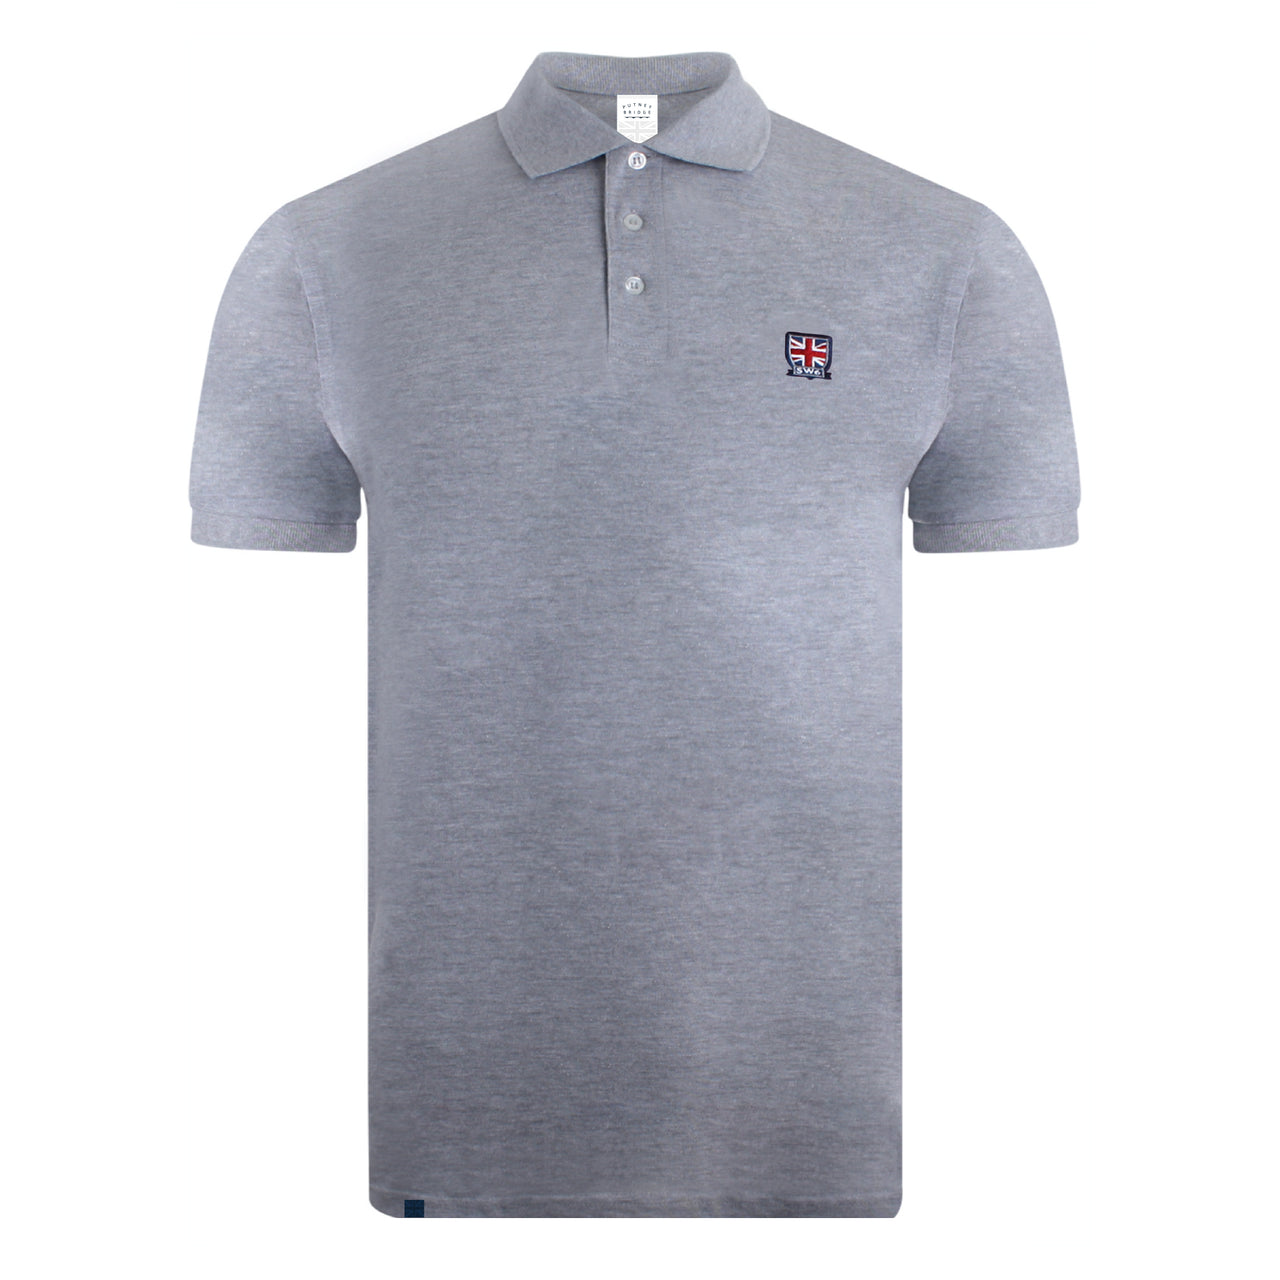 Emblem Polo Shirt - Grey Marl